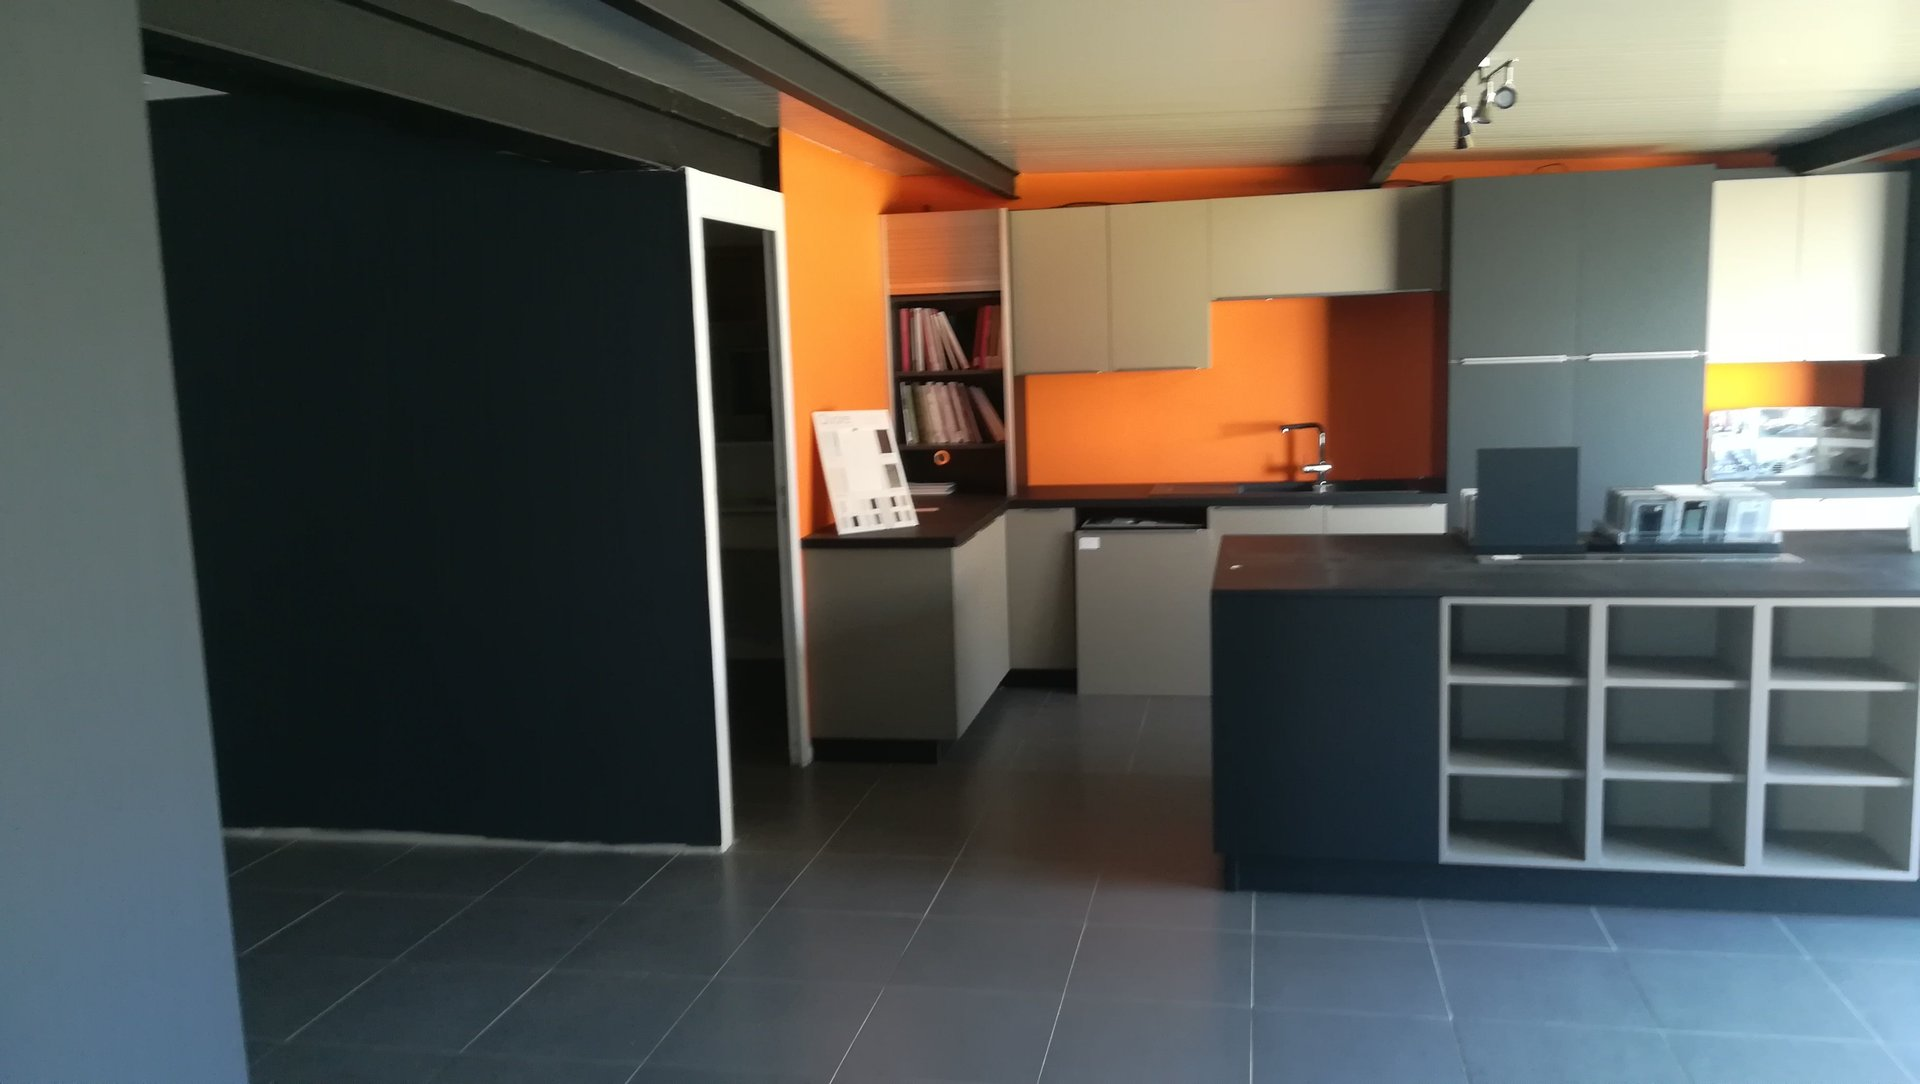 LOCAL 170M² PORTET sur GARONNE